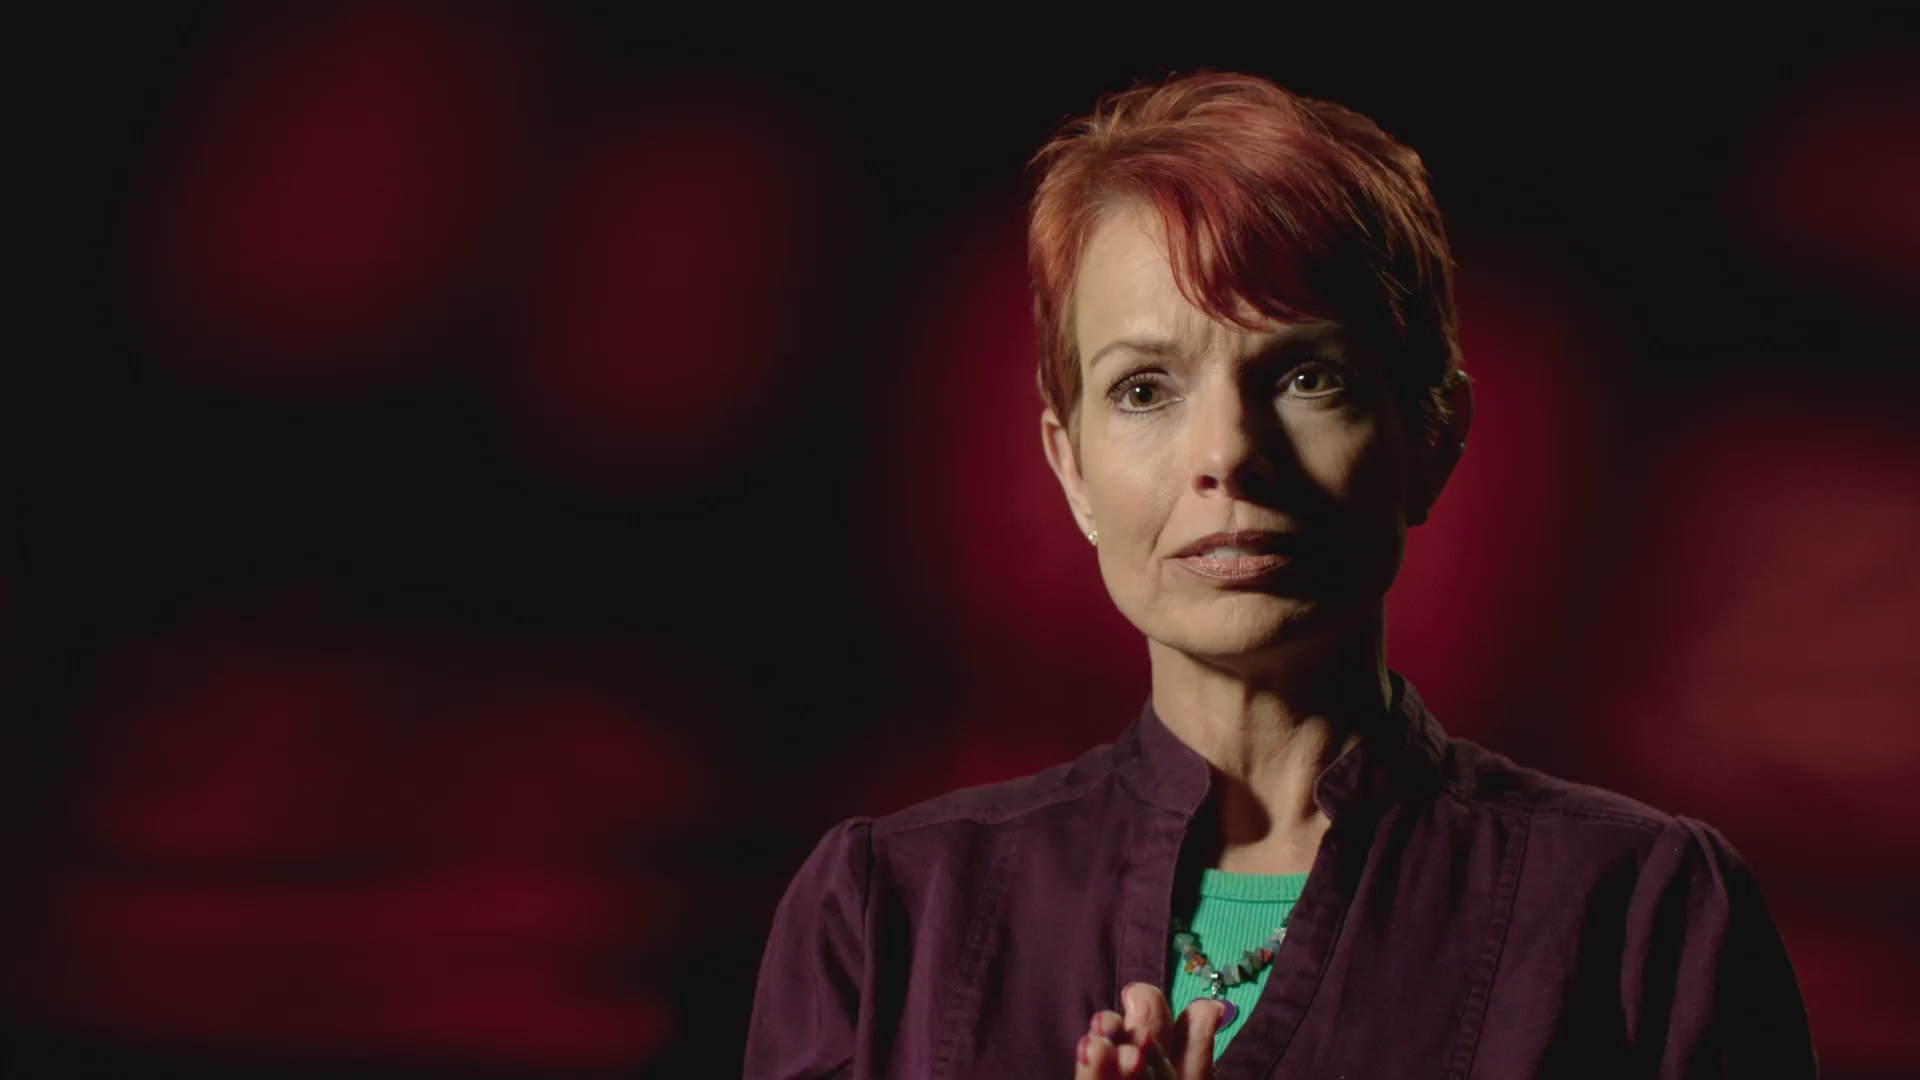 Watch Serena Booth Erin Caffey Charlie Wilkinson Had Time To Change Their Minds Killer Couples Season 13 Episode 6 Video The caffey house after the fire. serena booth erin caffey charlie wilkinson had time to change their minds